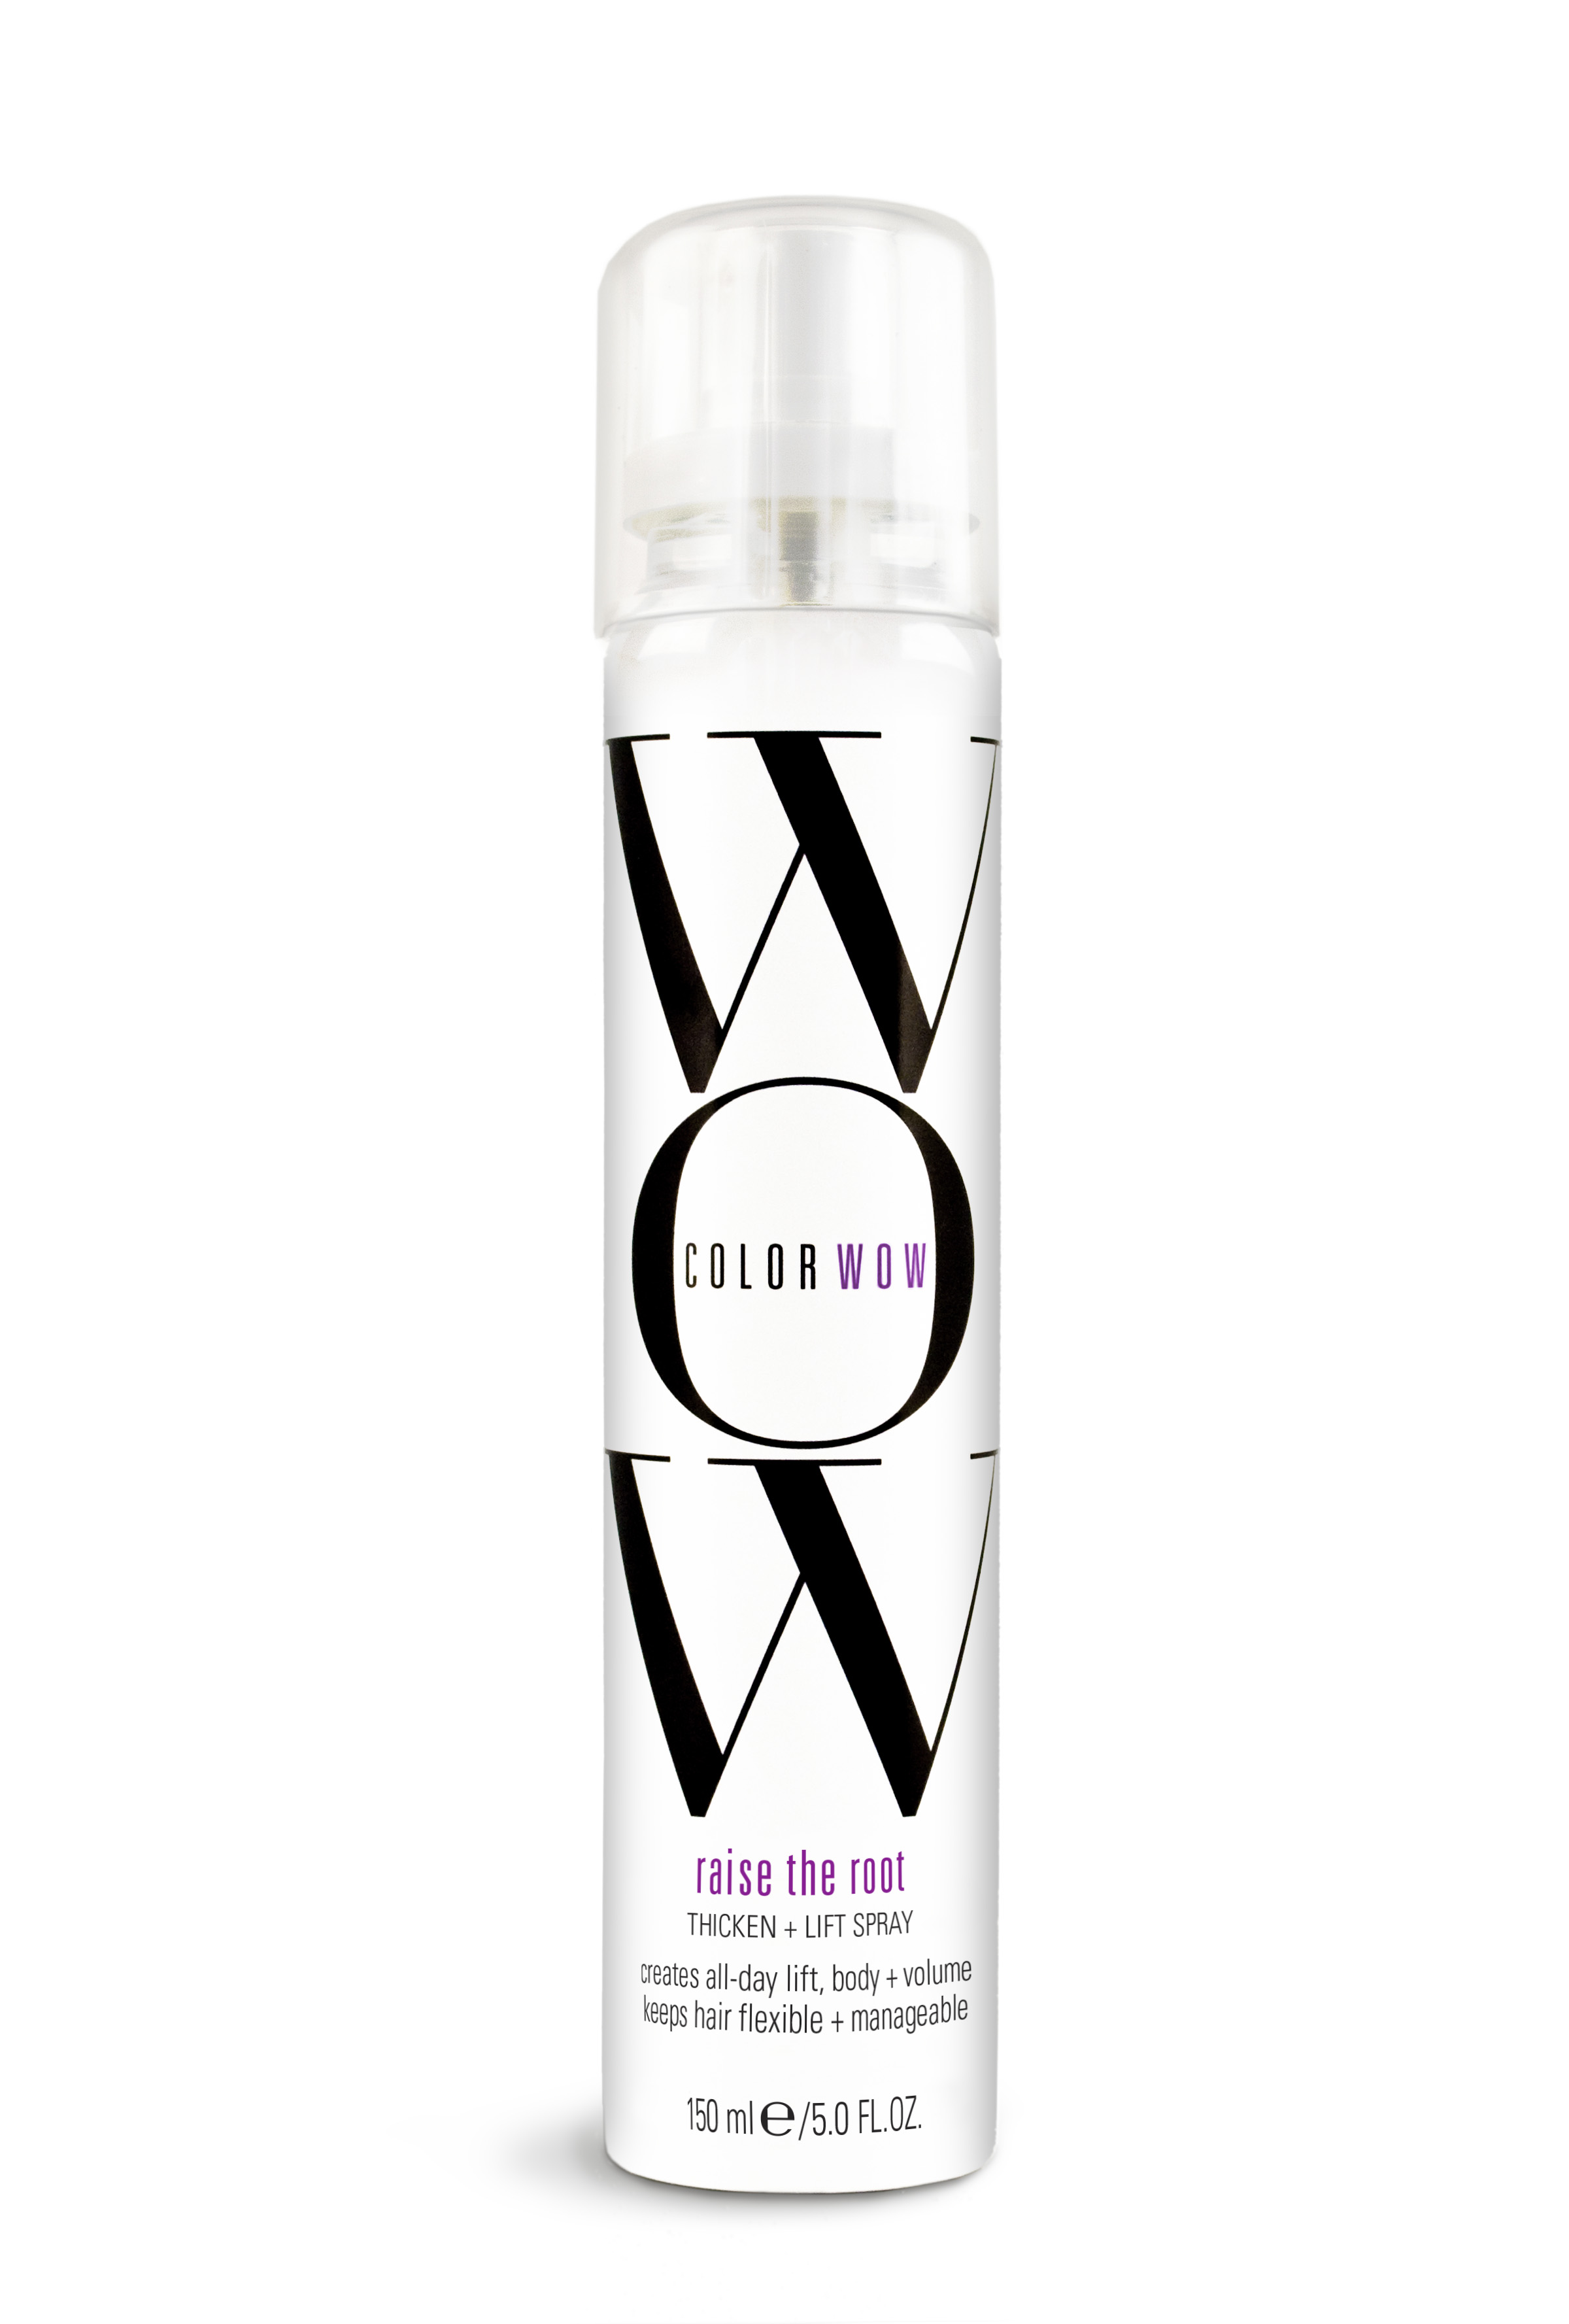 COLOR WOW RAISE THE ROOT – 200 ml